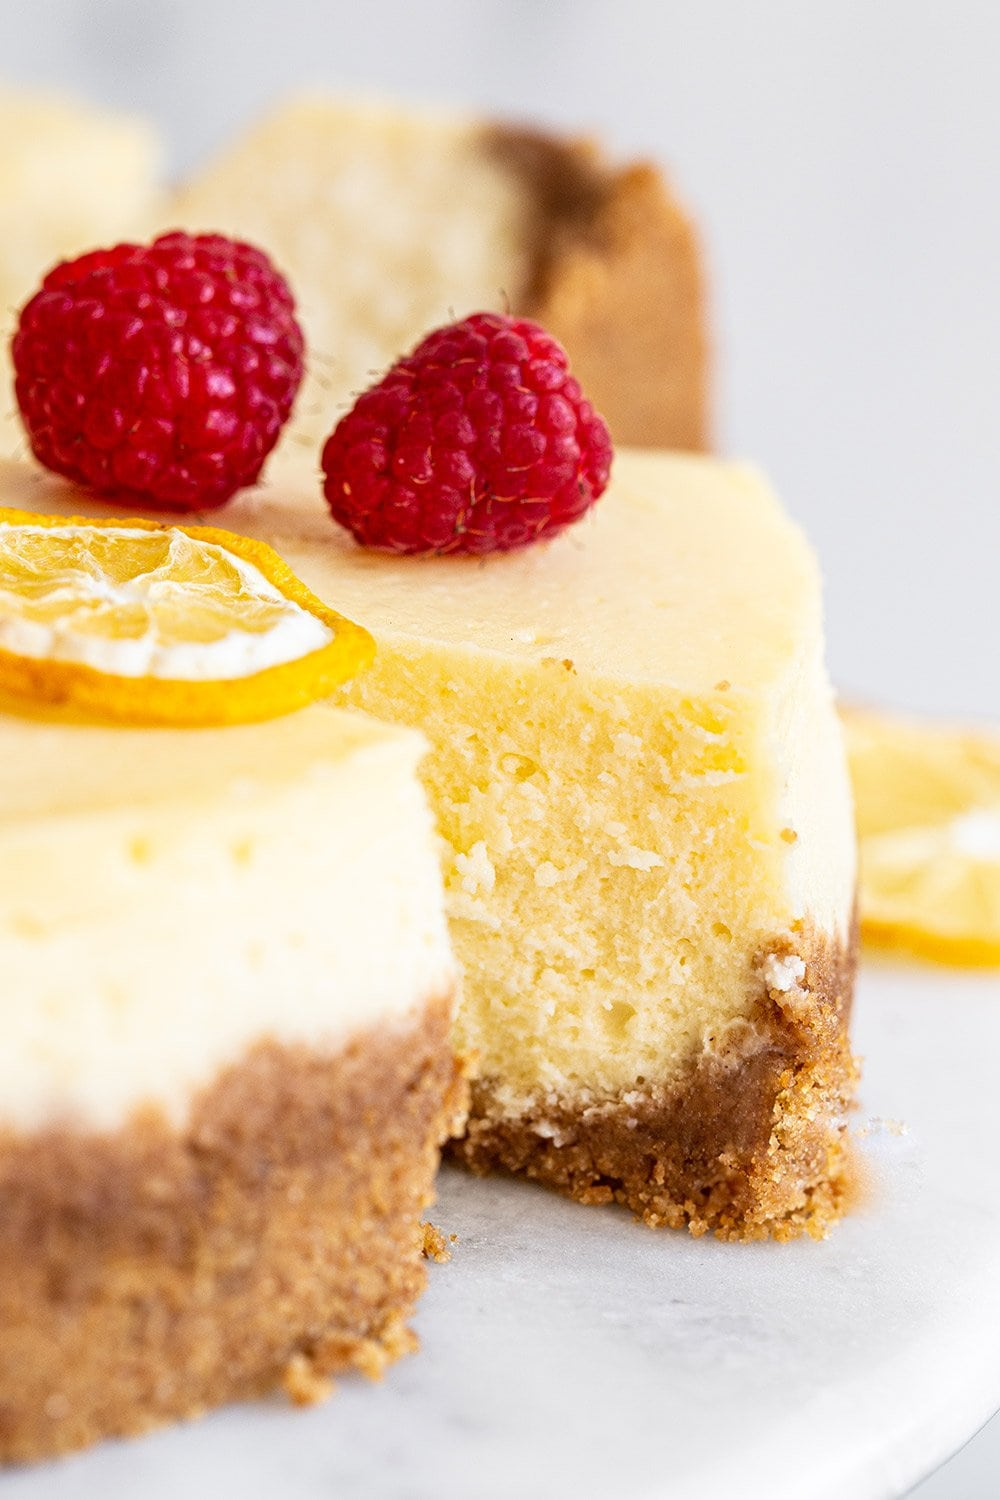 slice of rich classic cheesecake with fruit garnished on top